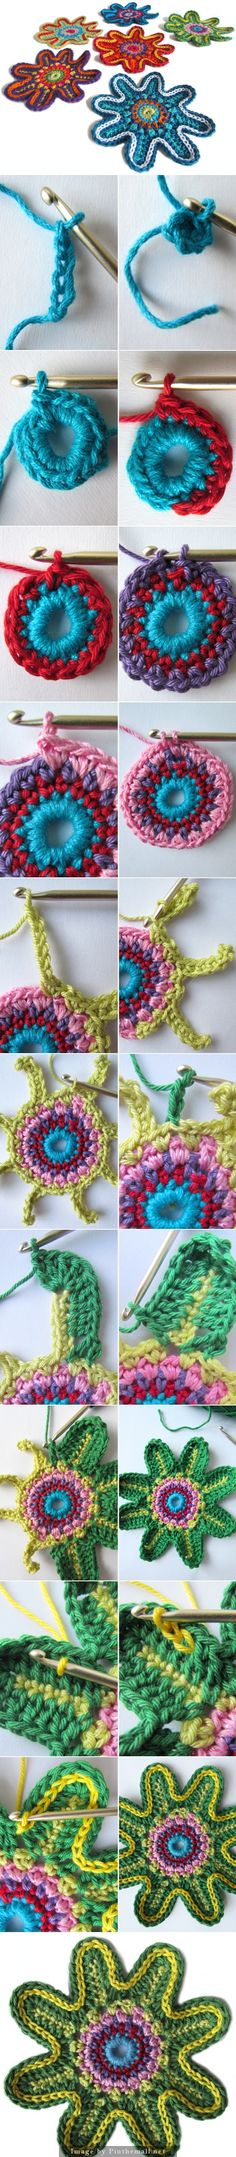 #Crochet #Tutorial for these wonderful flower motifs from a Dutch blog that has…